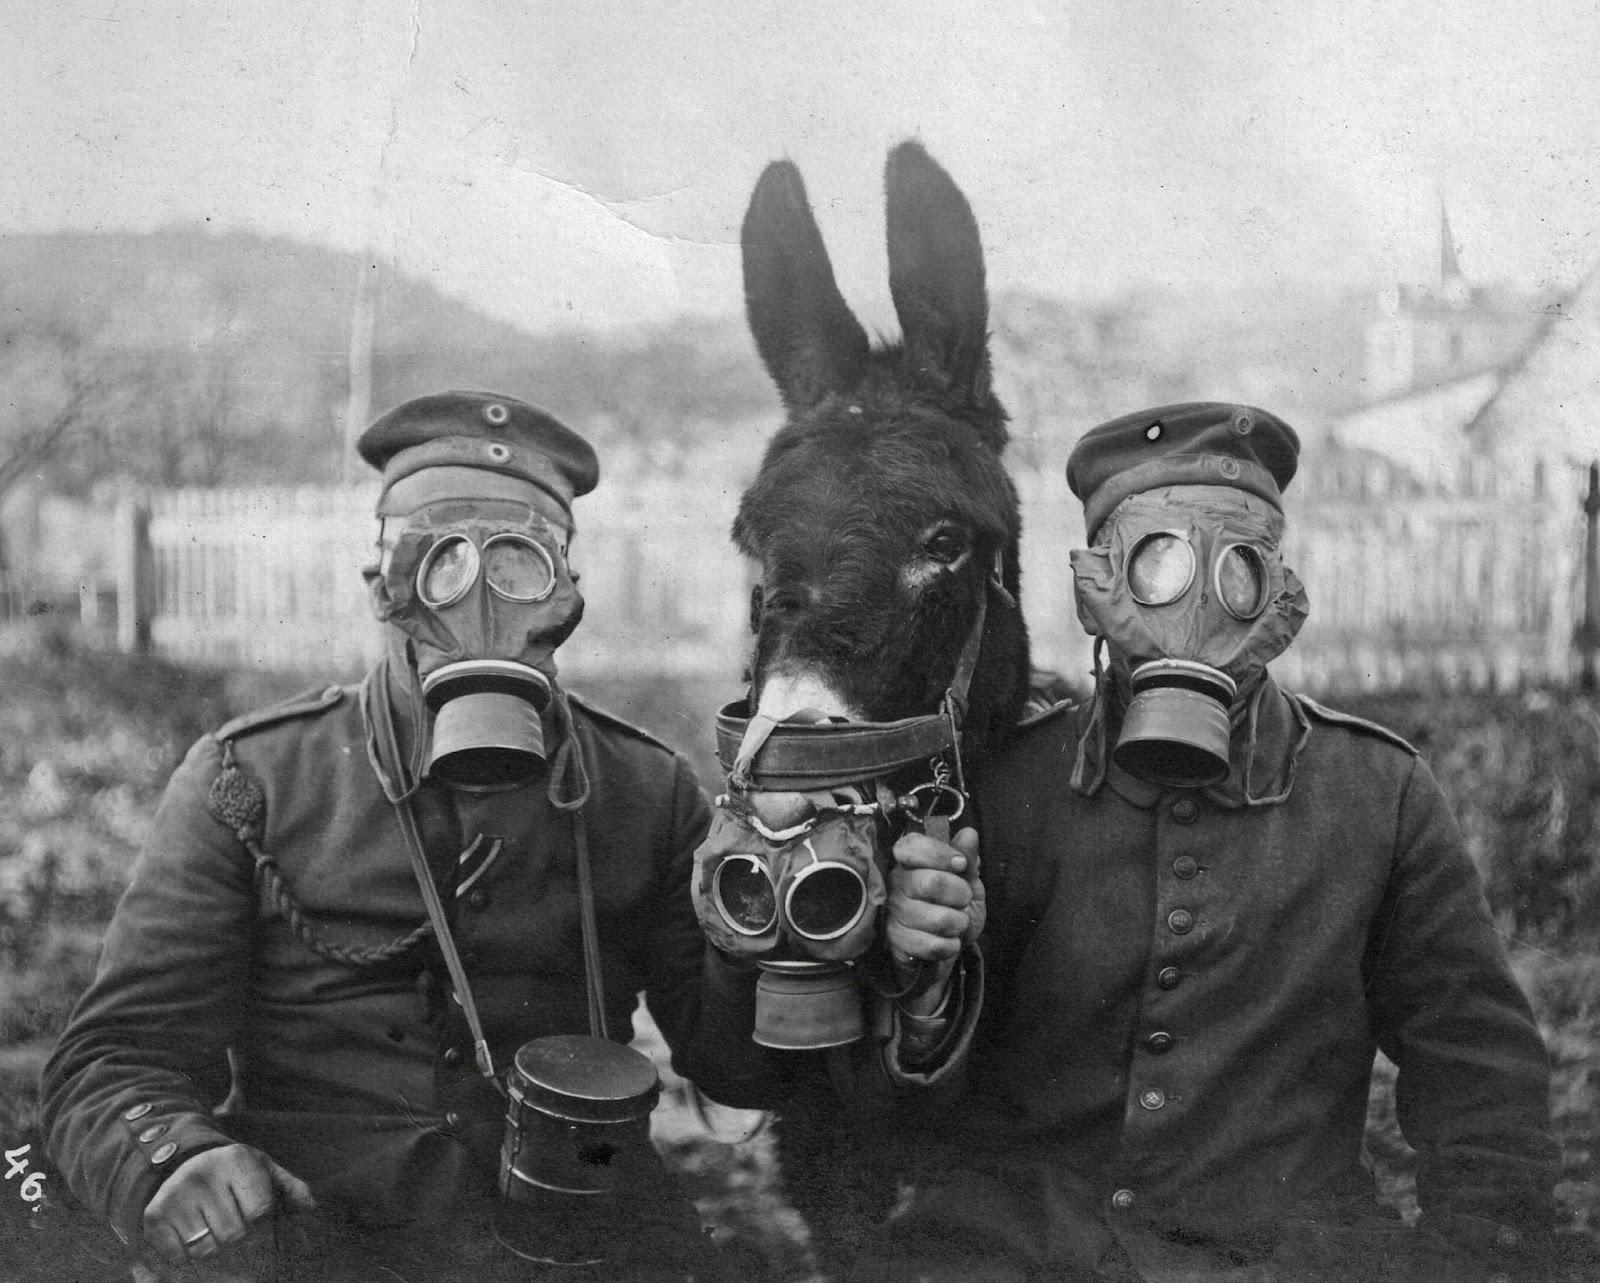 Two German soldiers, a donkey, and their gas-masks. 1917